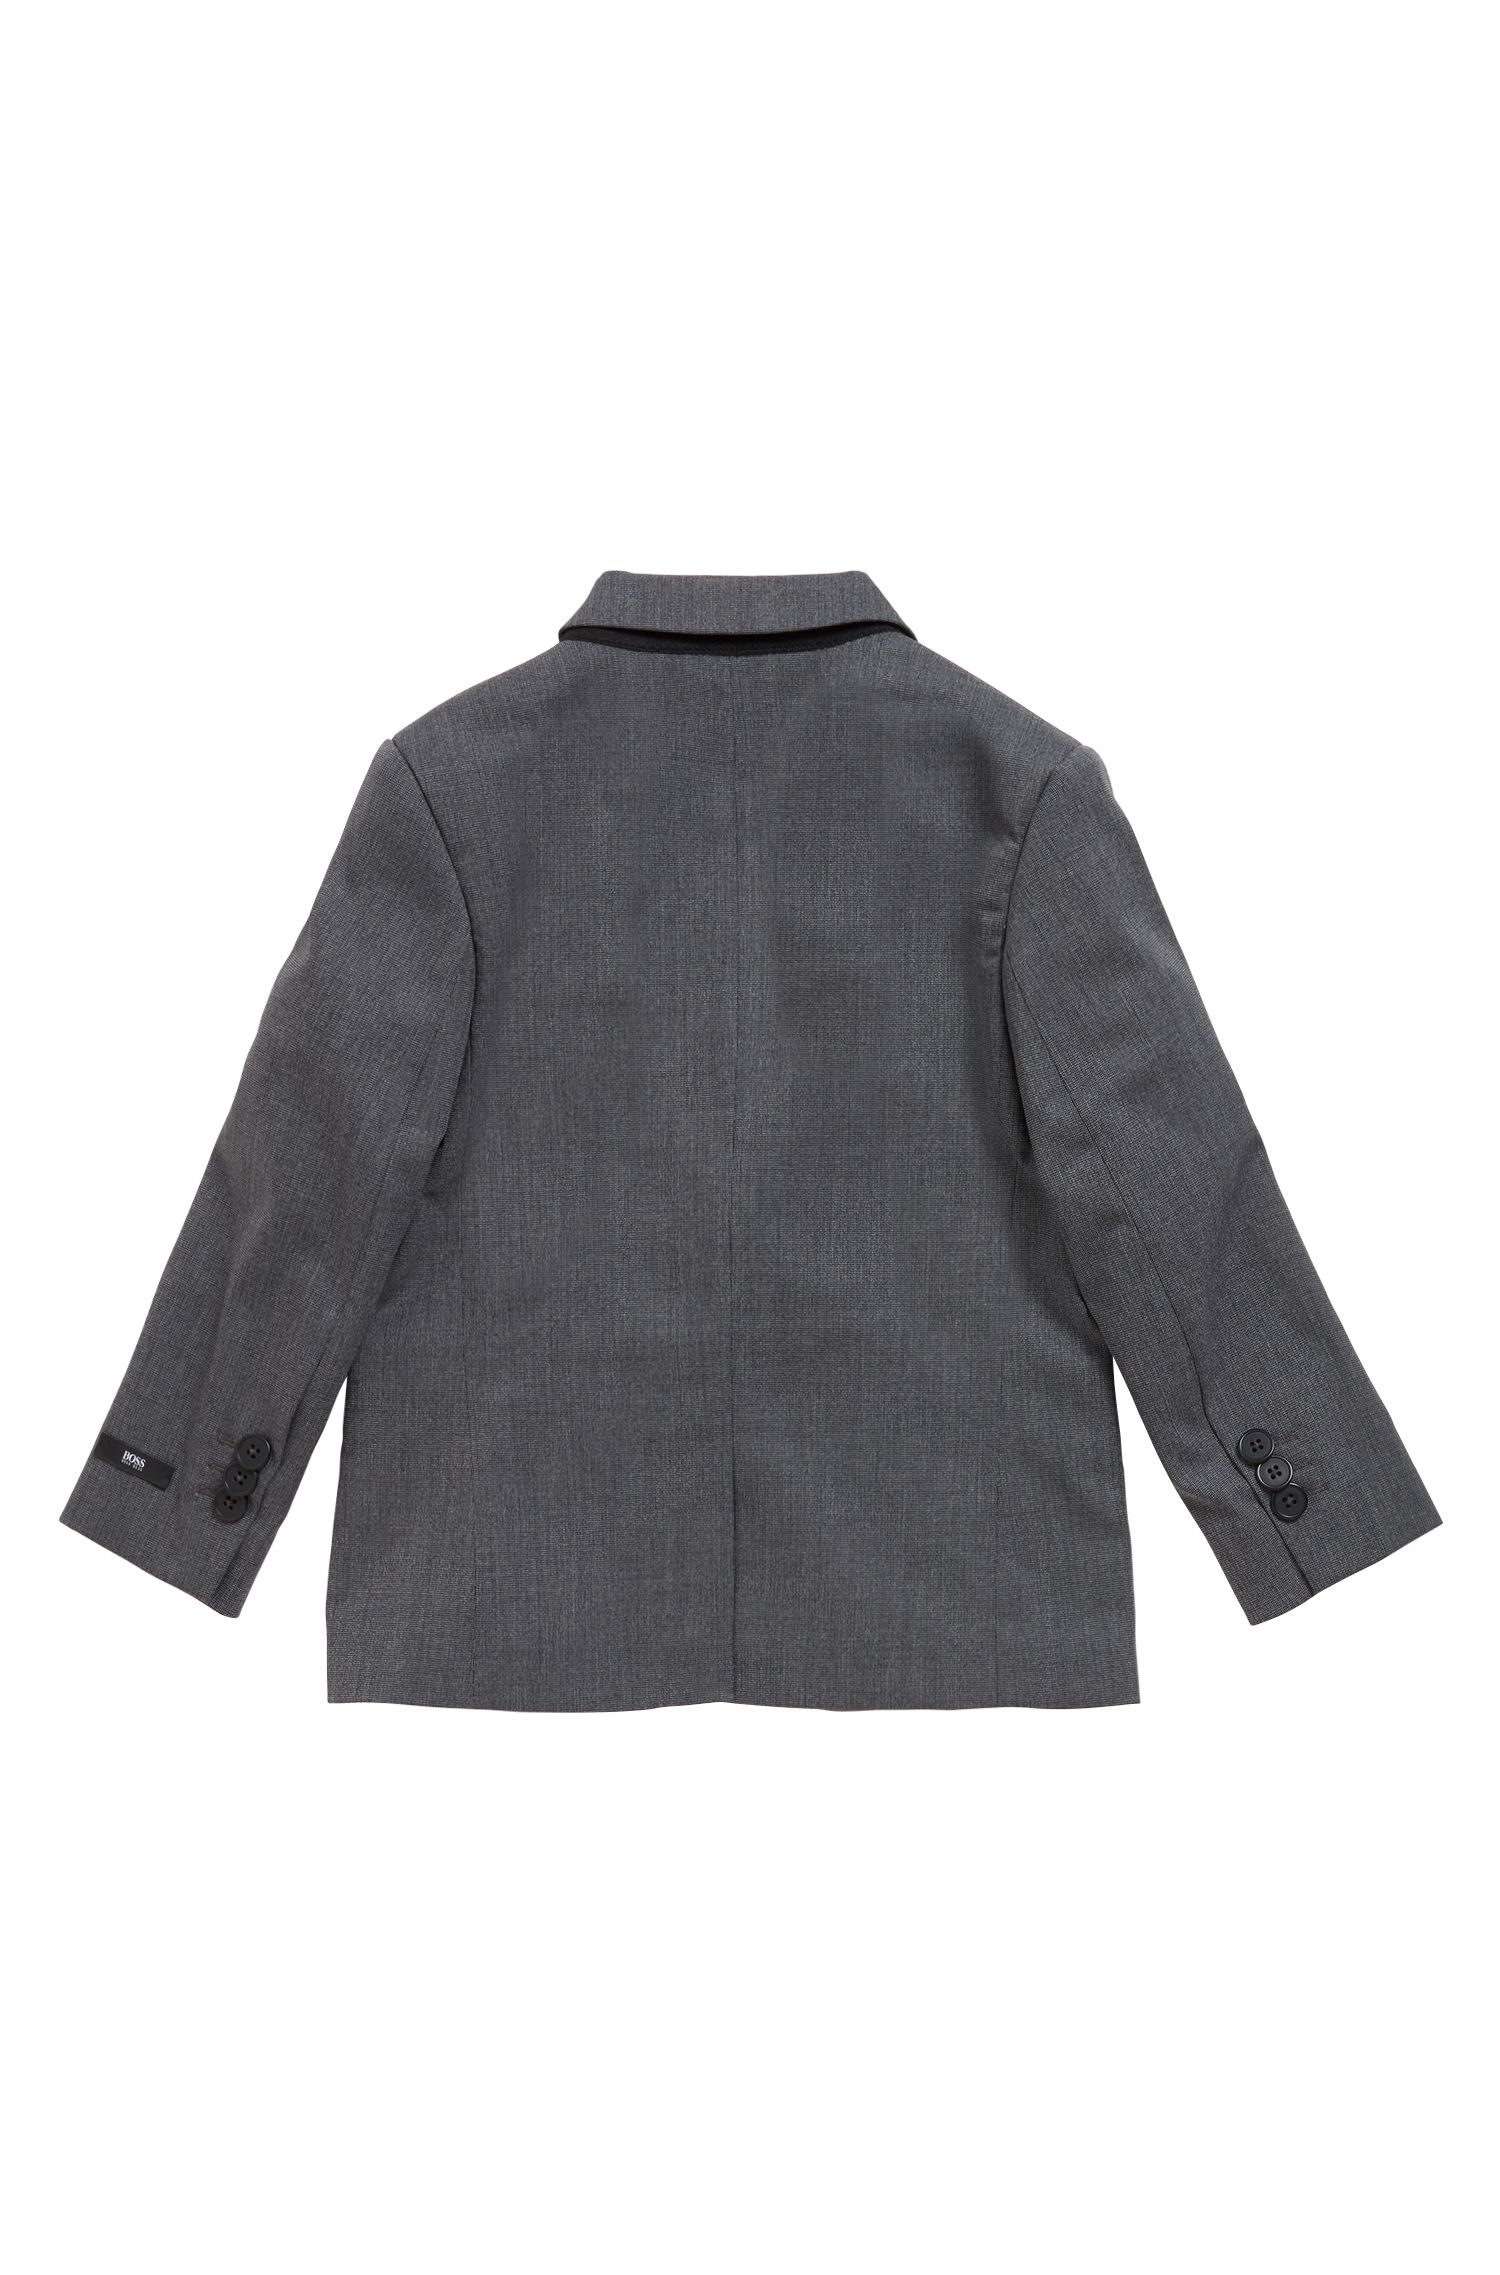 Kids' suit in stretch technical fabric with notch lapels, Patterned